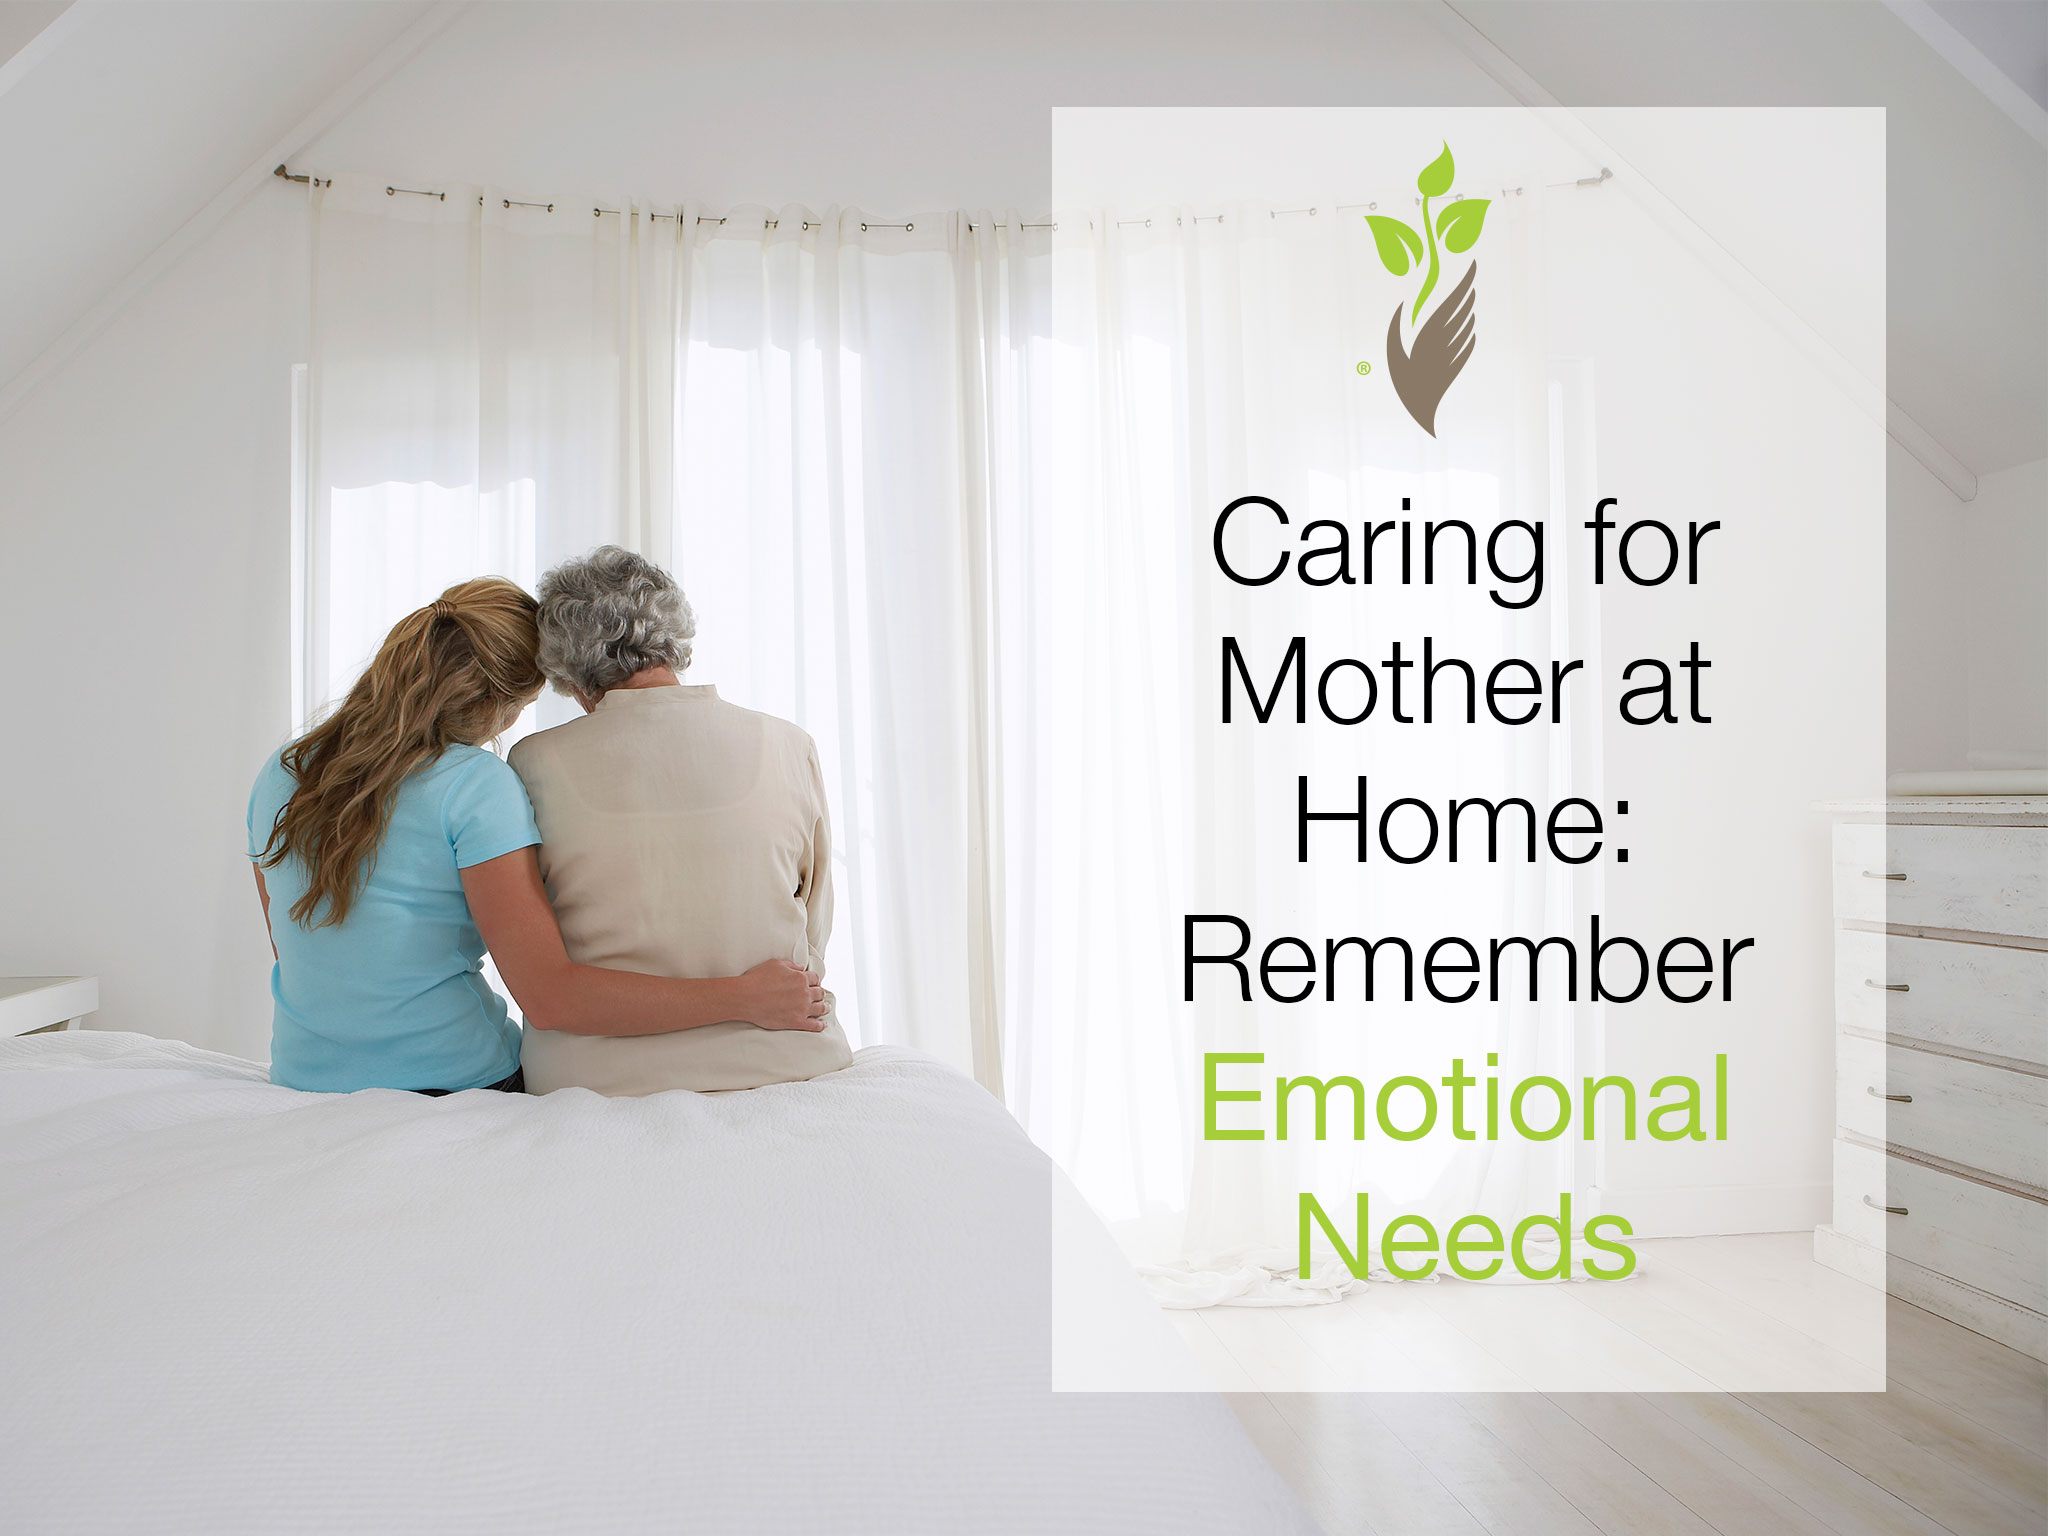 Caring for Mother at Home: Remember Emotional Needs